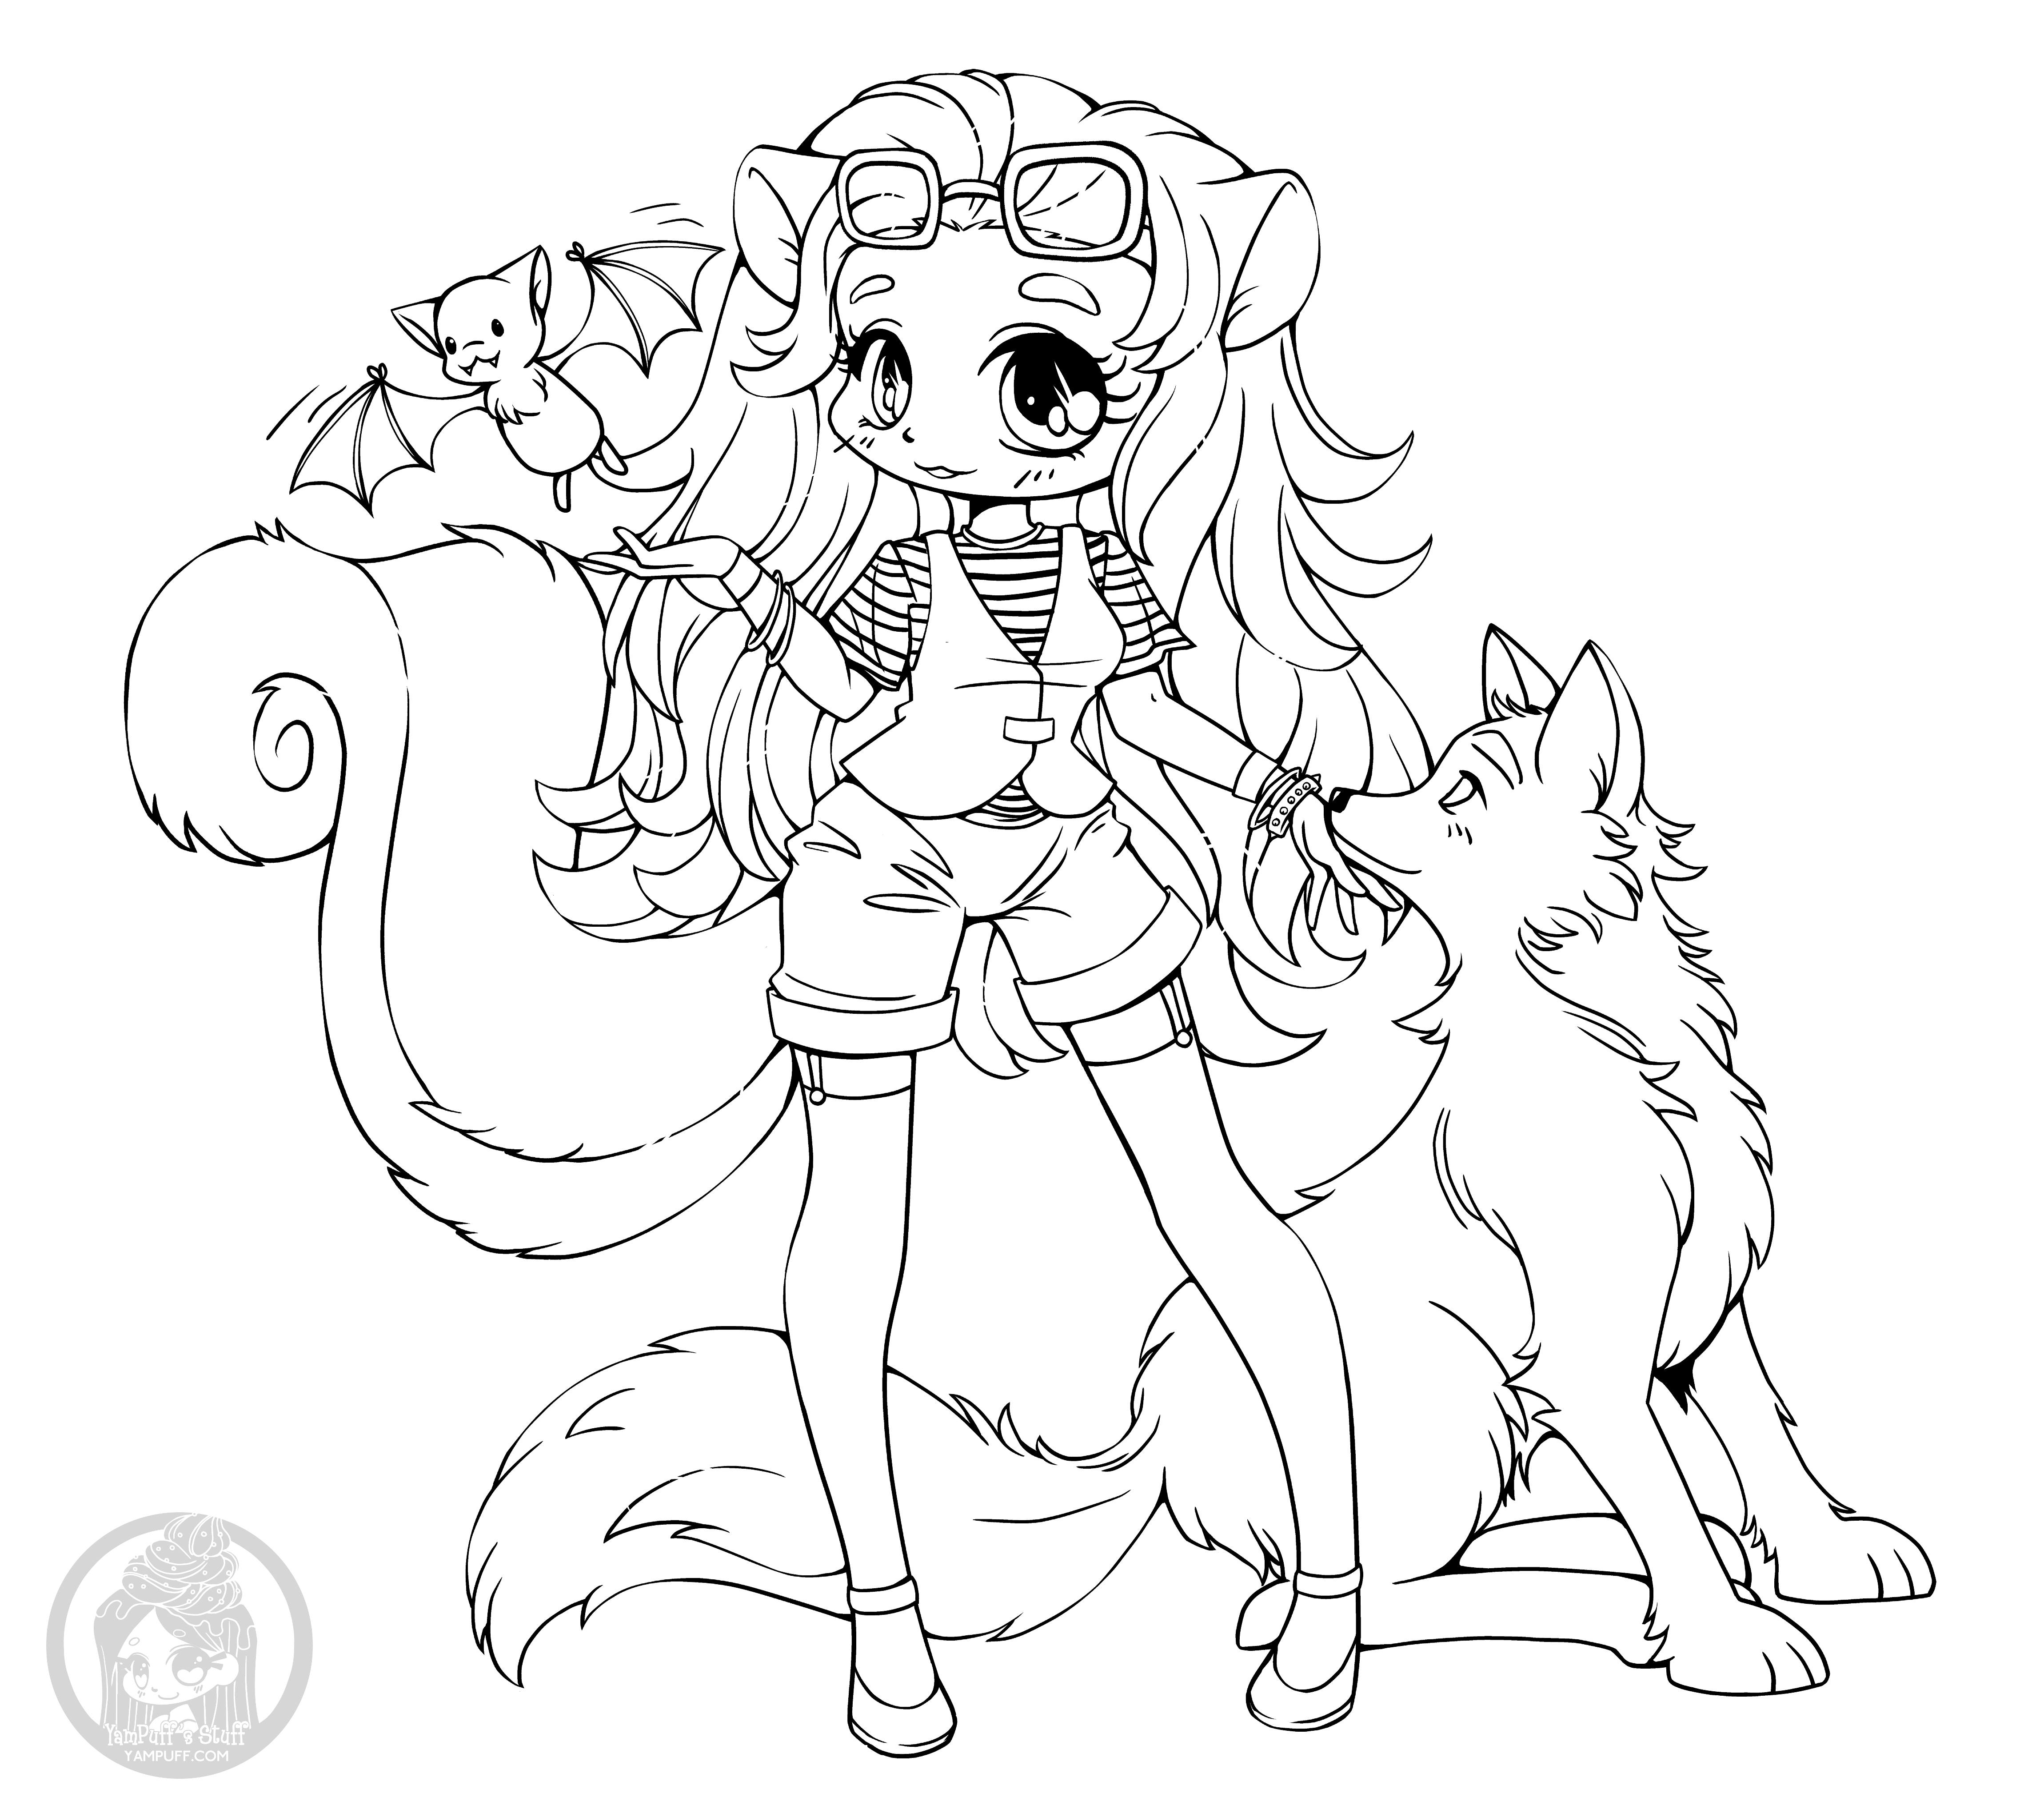 chibi girl coloring pages chibi spring girl lineart free for coloring by vocaloid chibi girl pages coloring